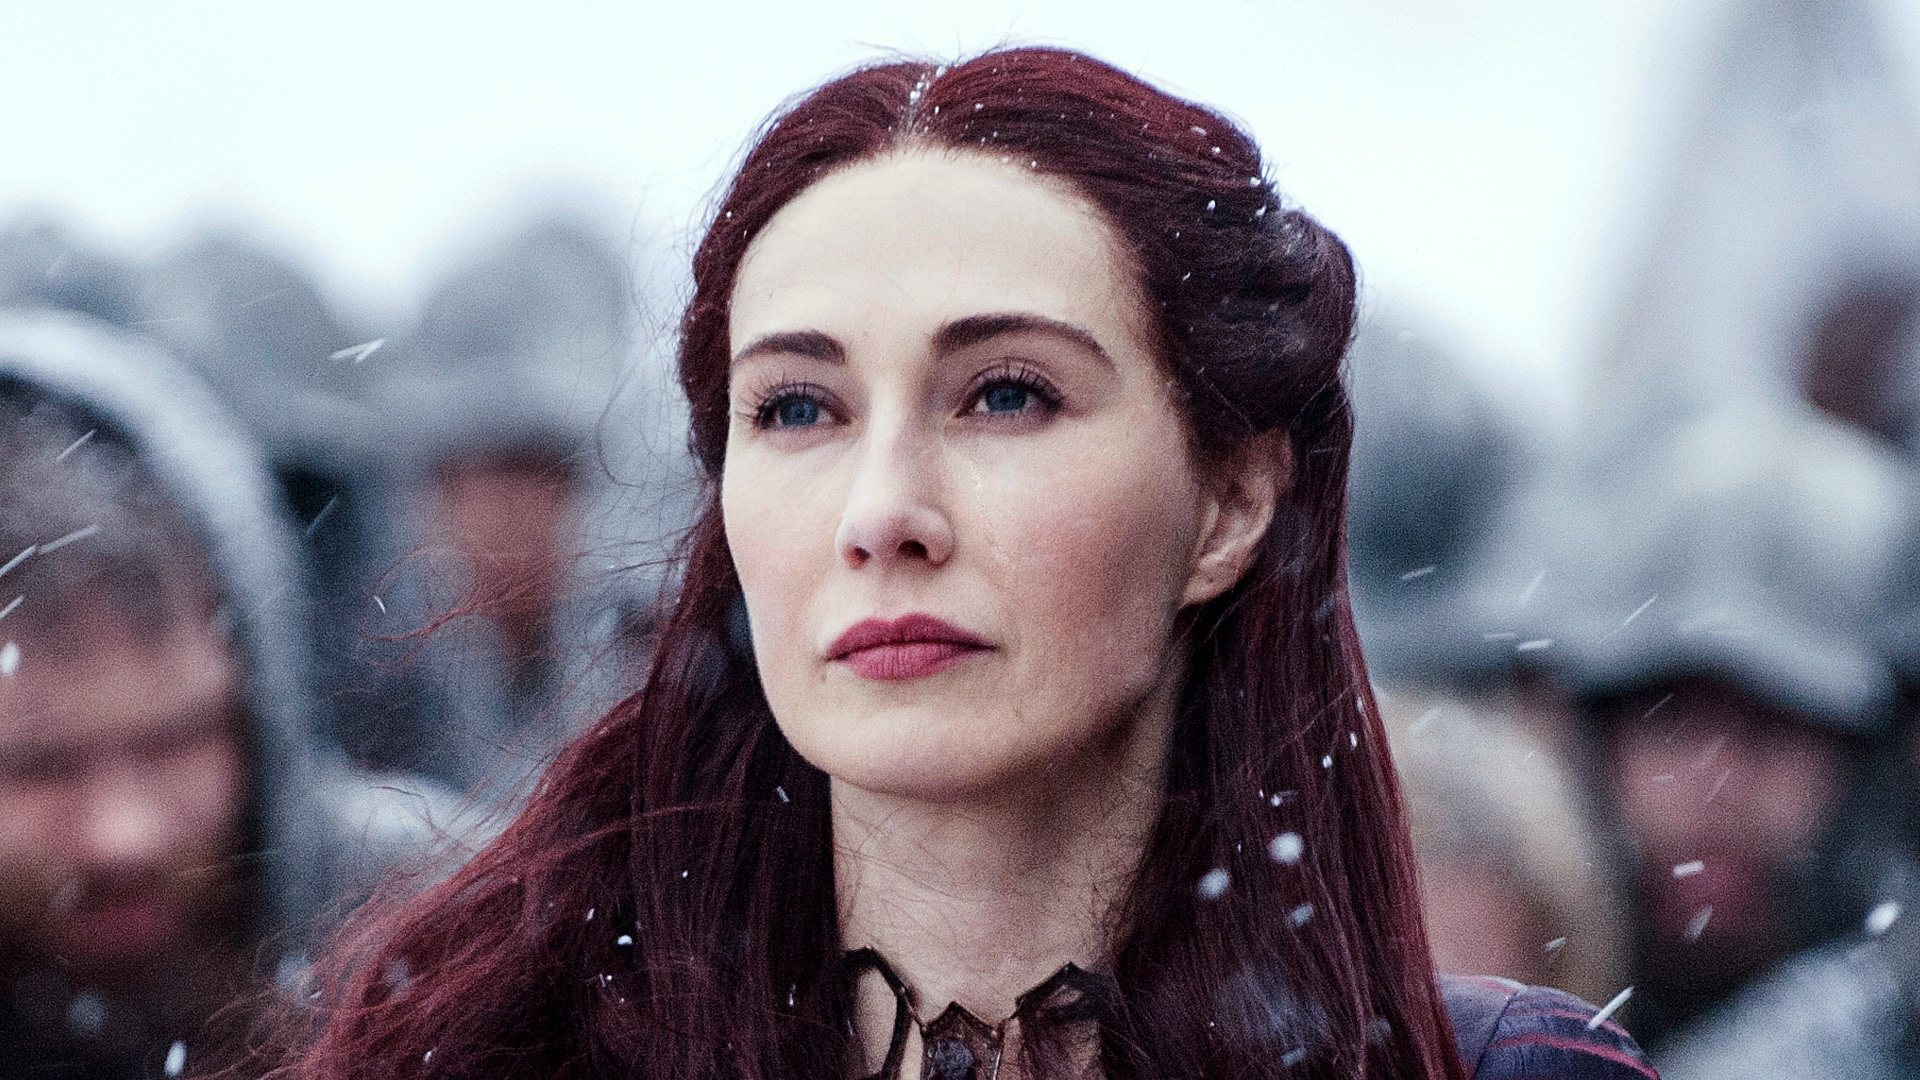 MELISANDRE :: THE RED WOMAN - revelação em Game of Thrones